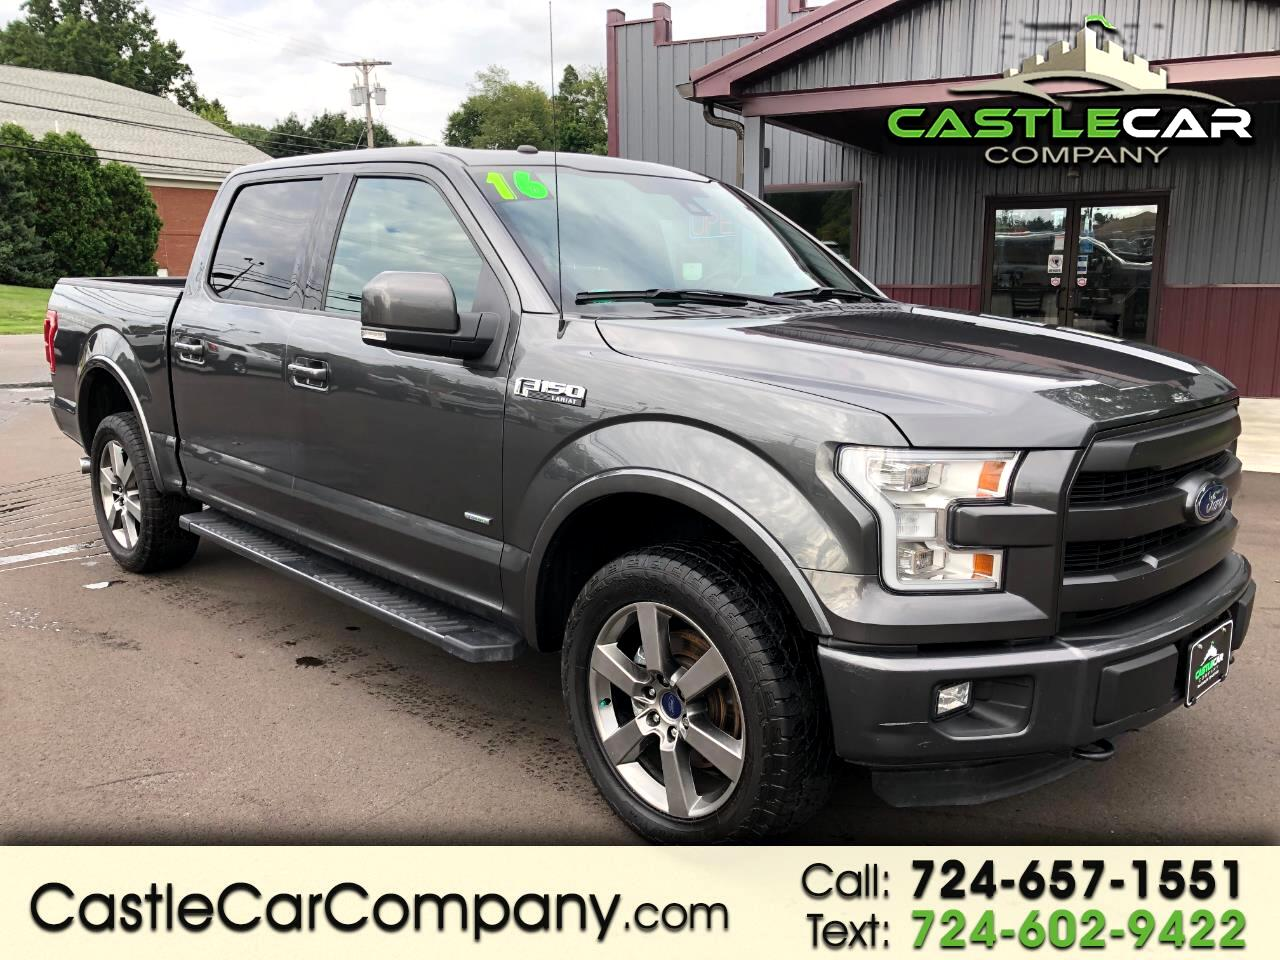 2016 Ford F-150 4WD SUPERCREW LARIAT WITH FX4 OFF ROAD PACKAGE